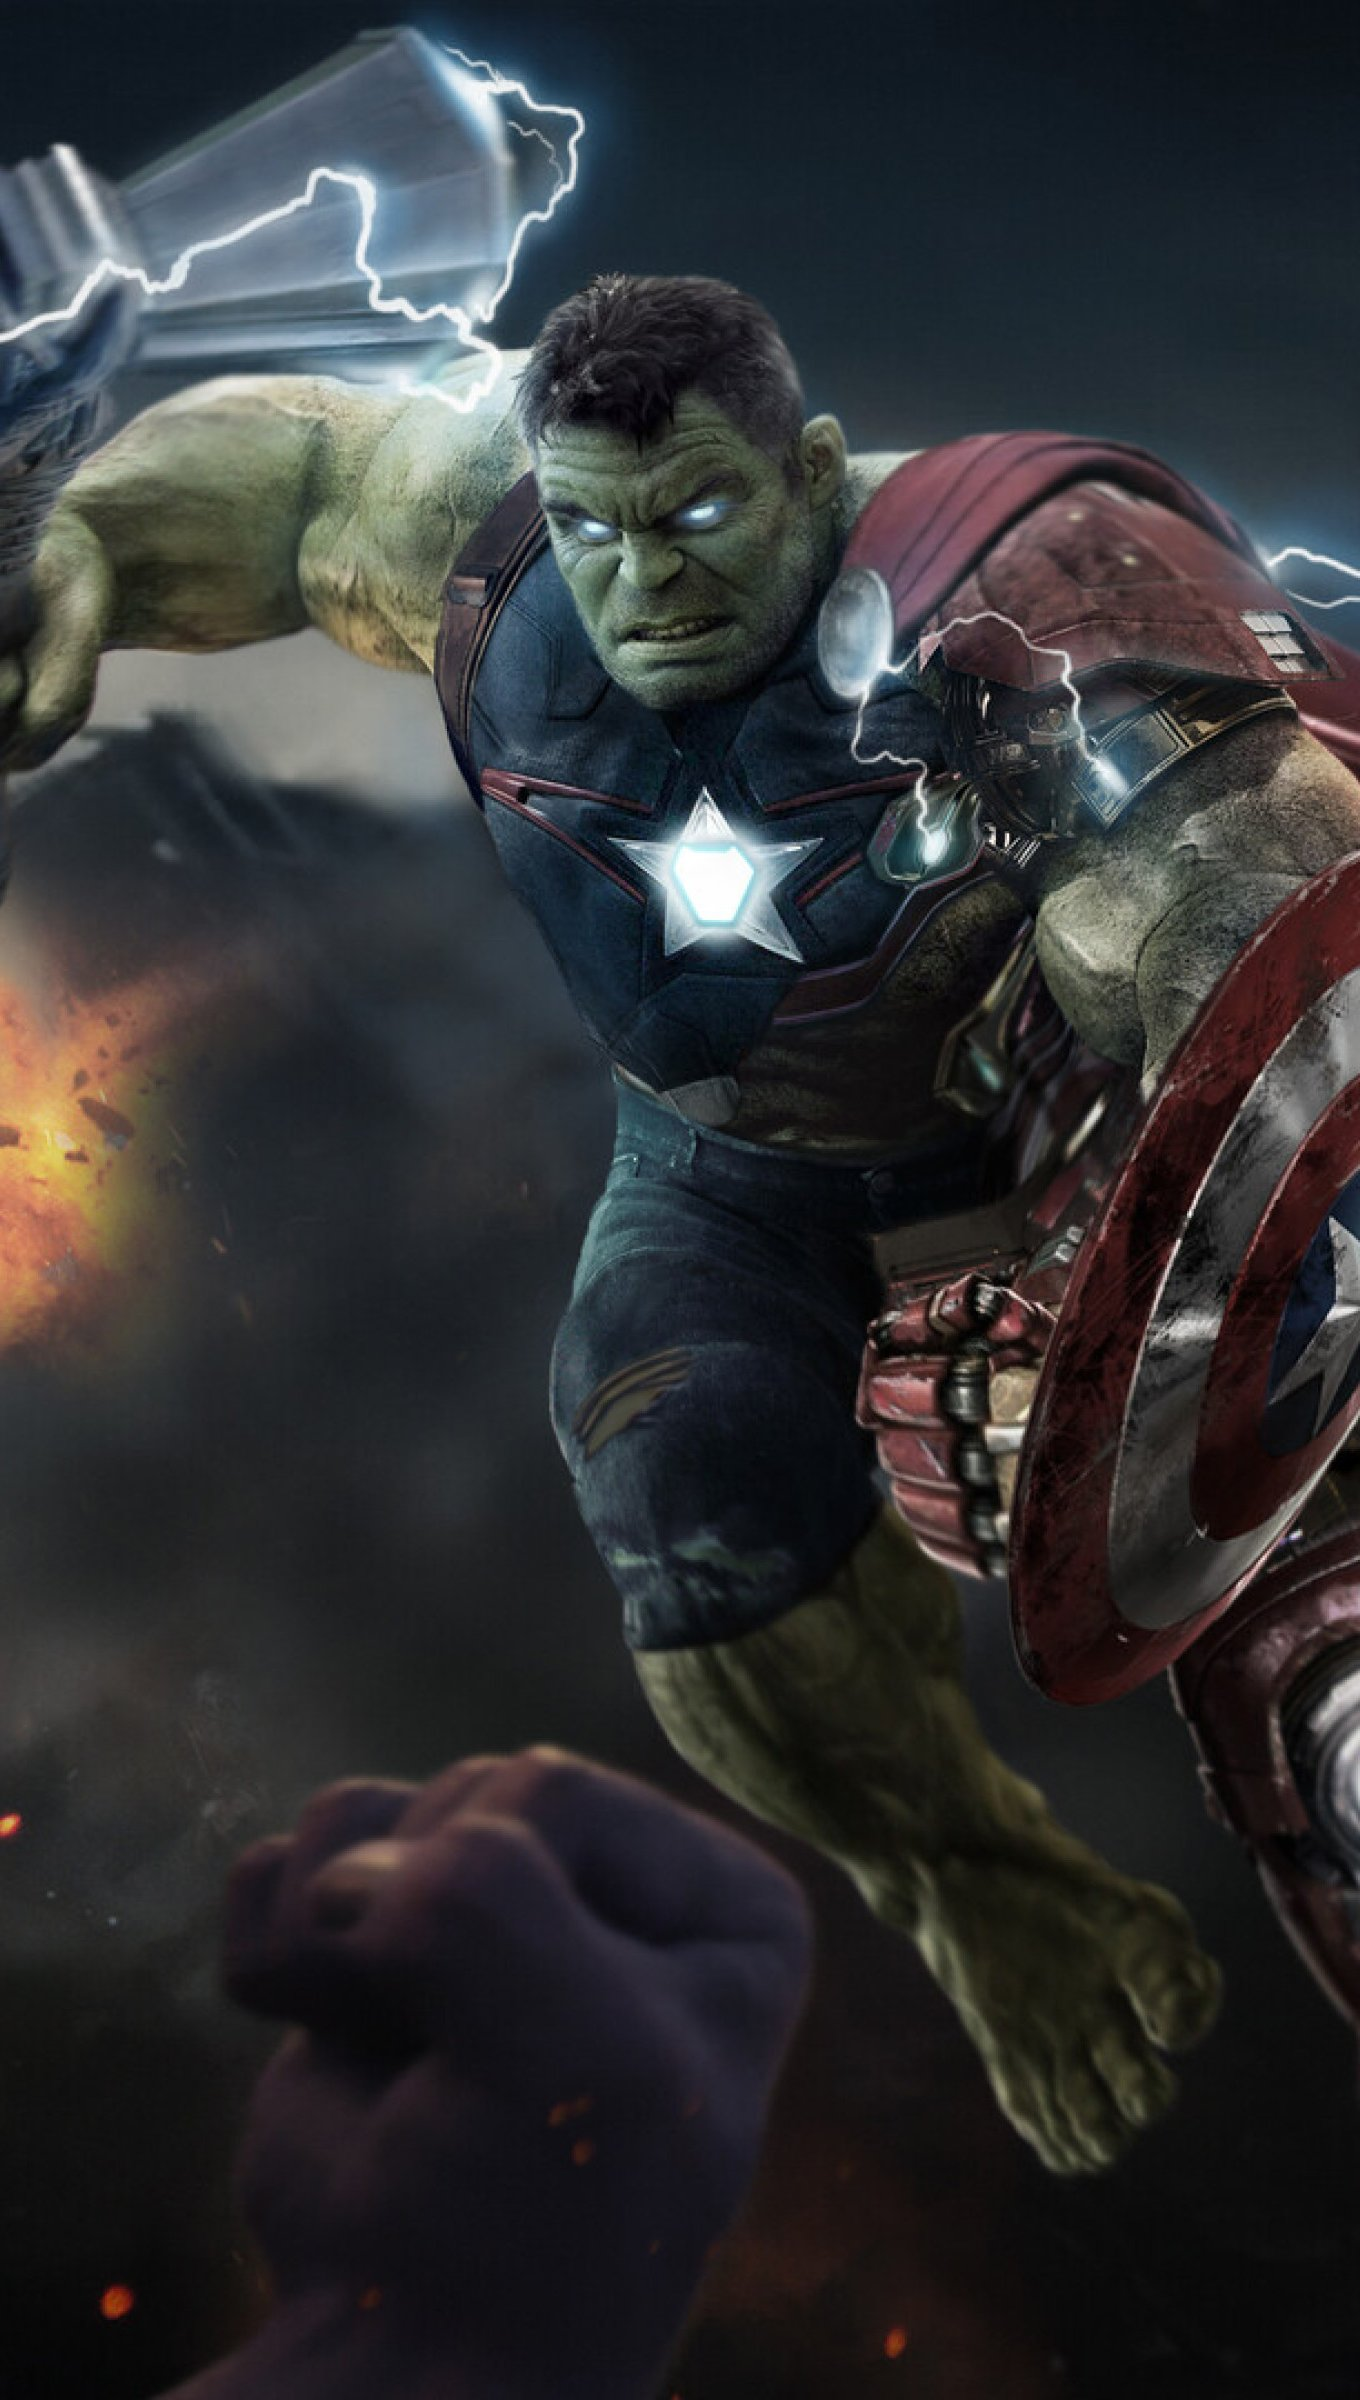 Wallpaper Hulk in Avengers Endgame Vertical